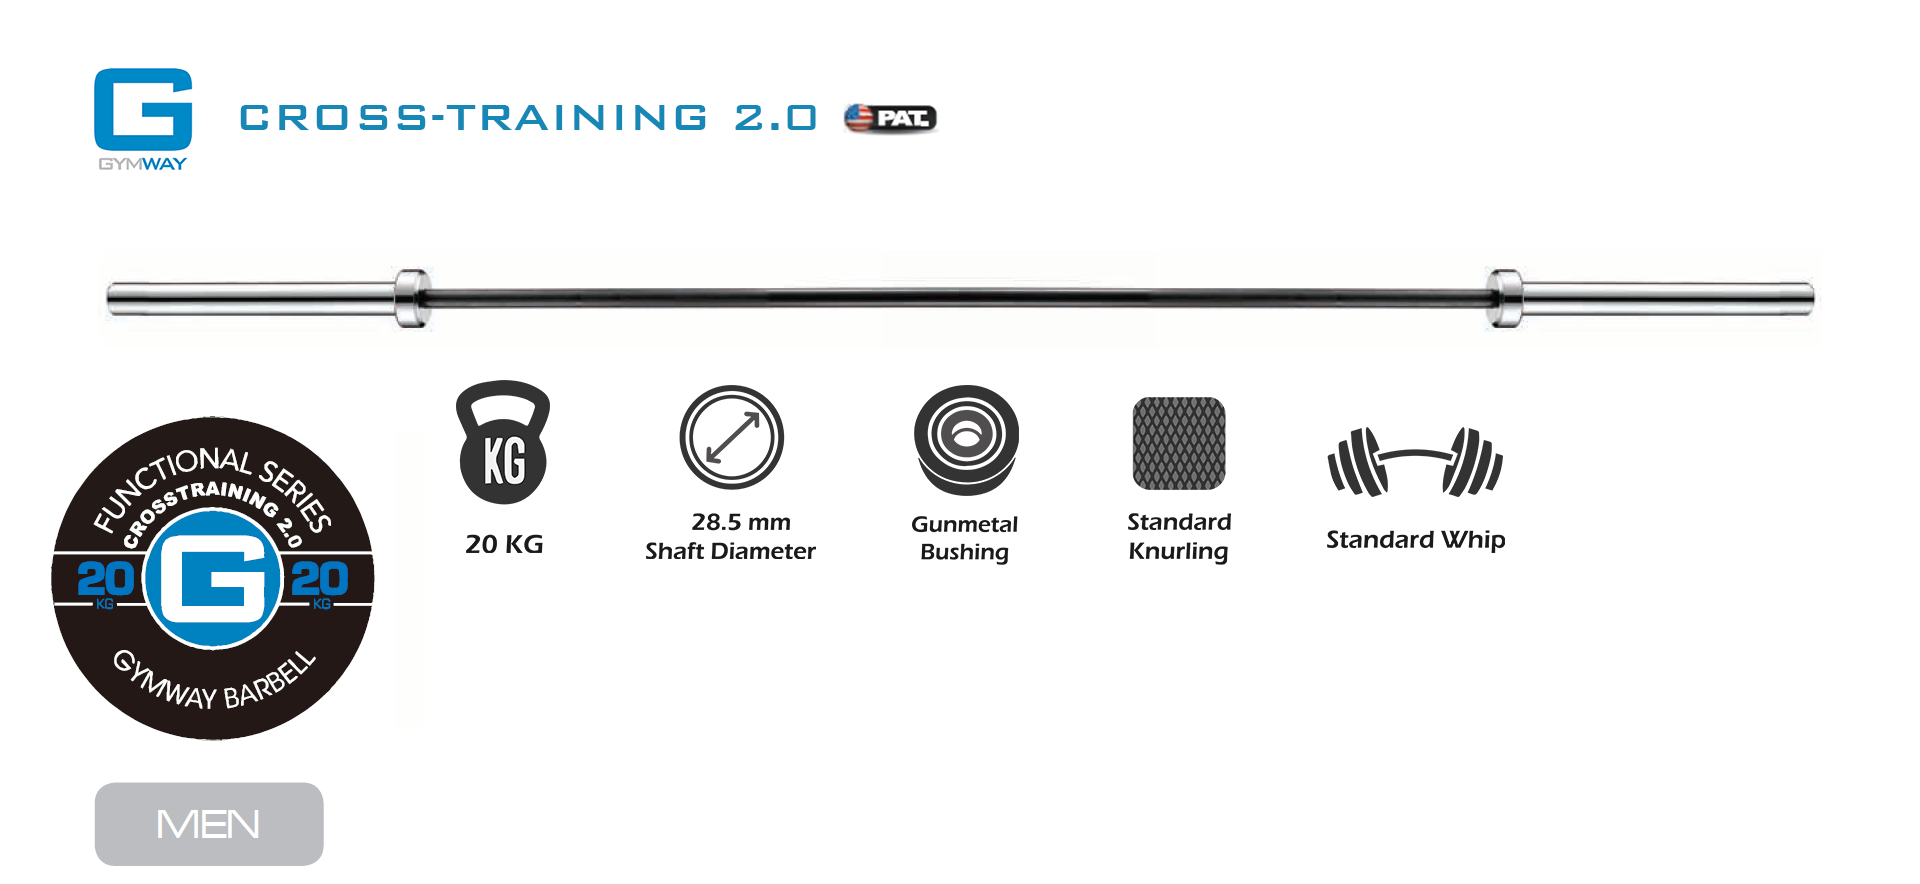 Gymway Cross-training Barbell Specs